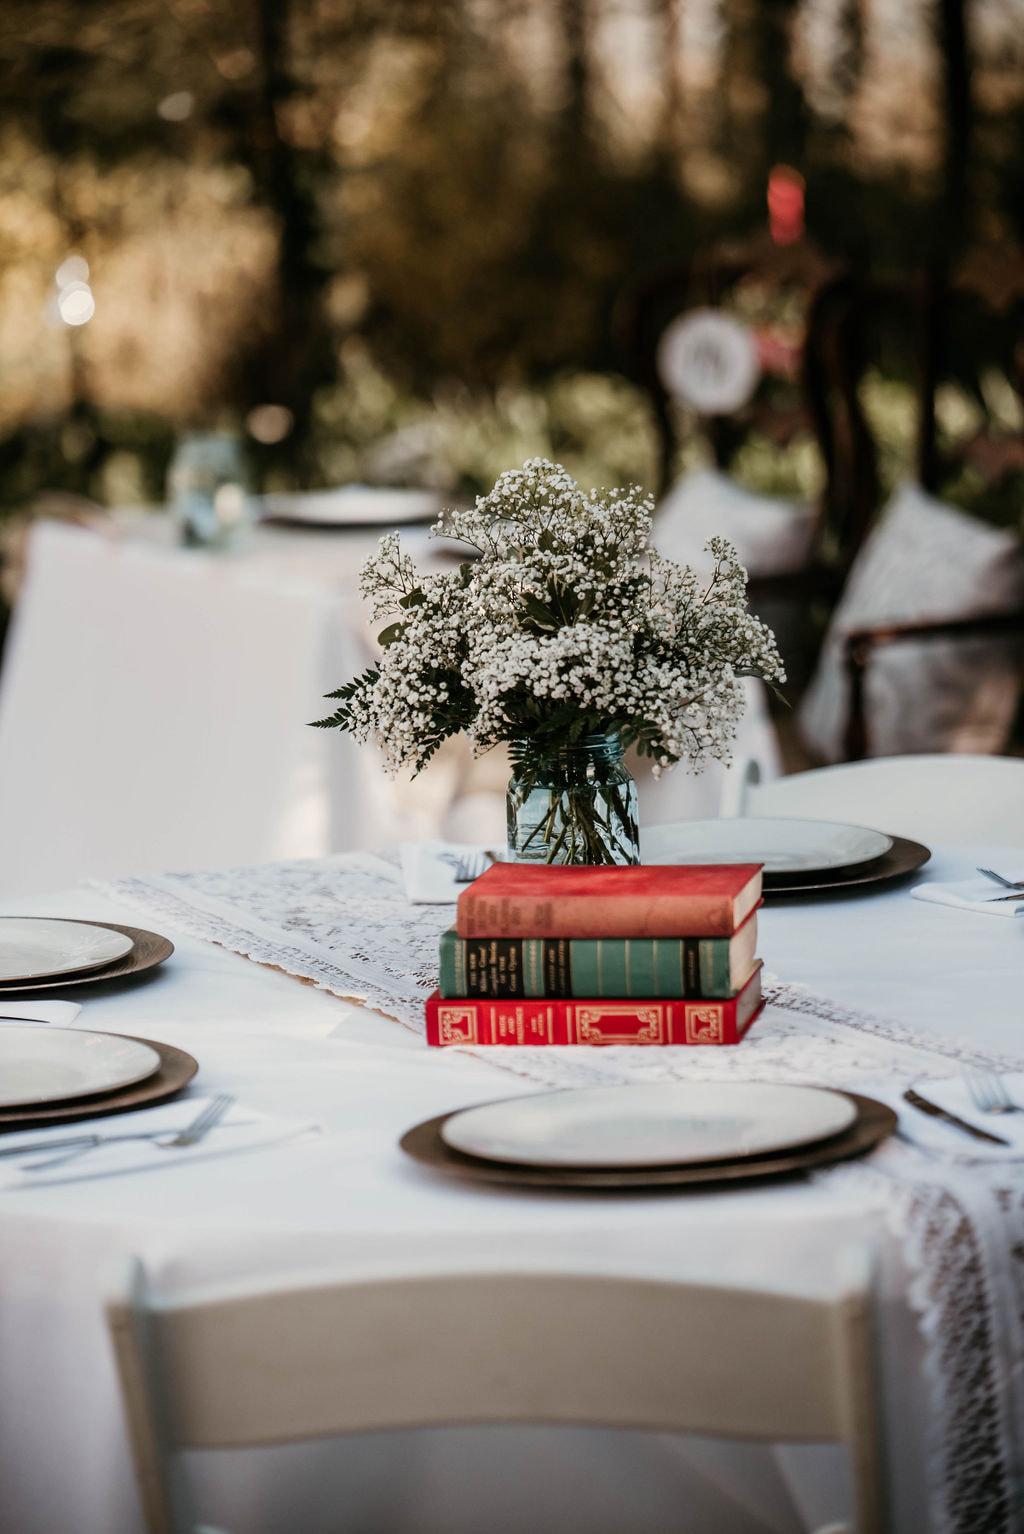 table decor with vintage books, flower arrangements, wood chargers with china